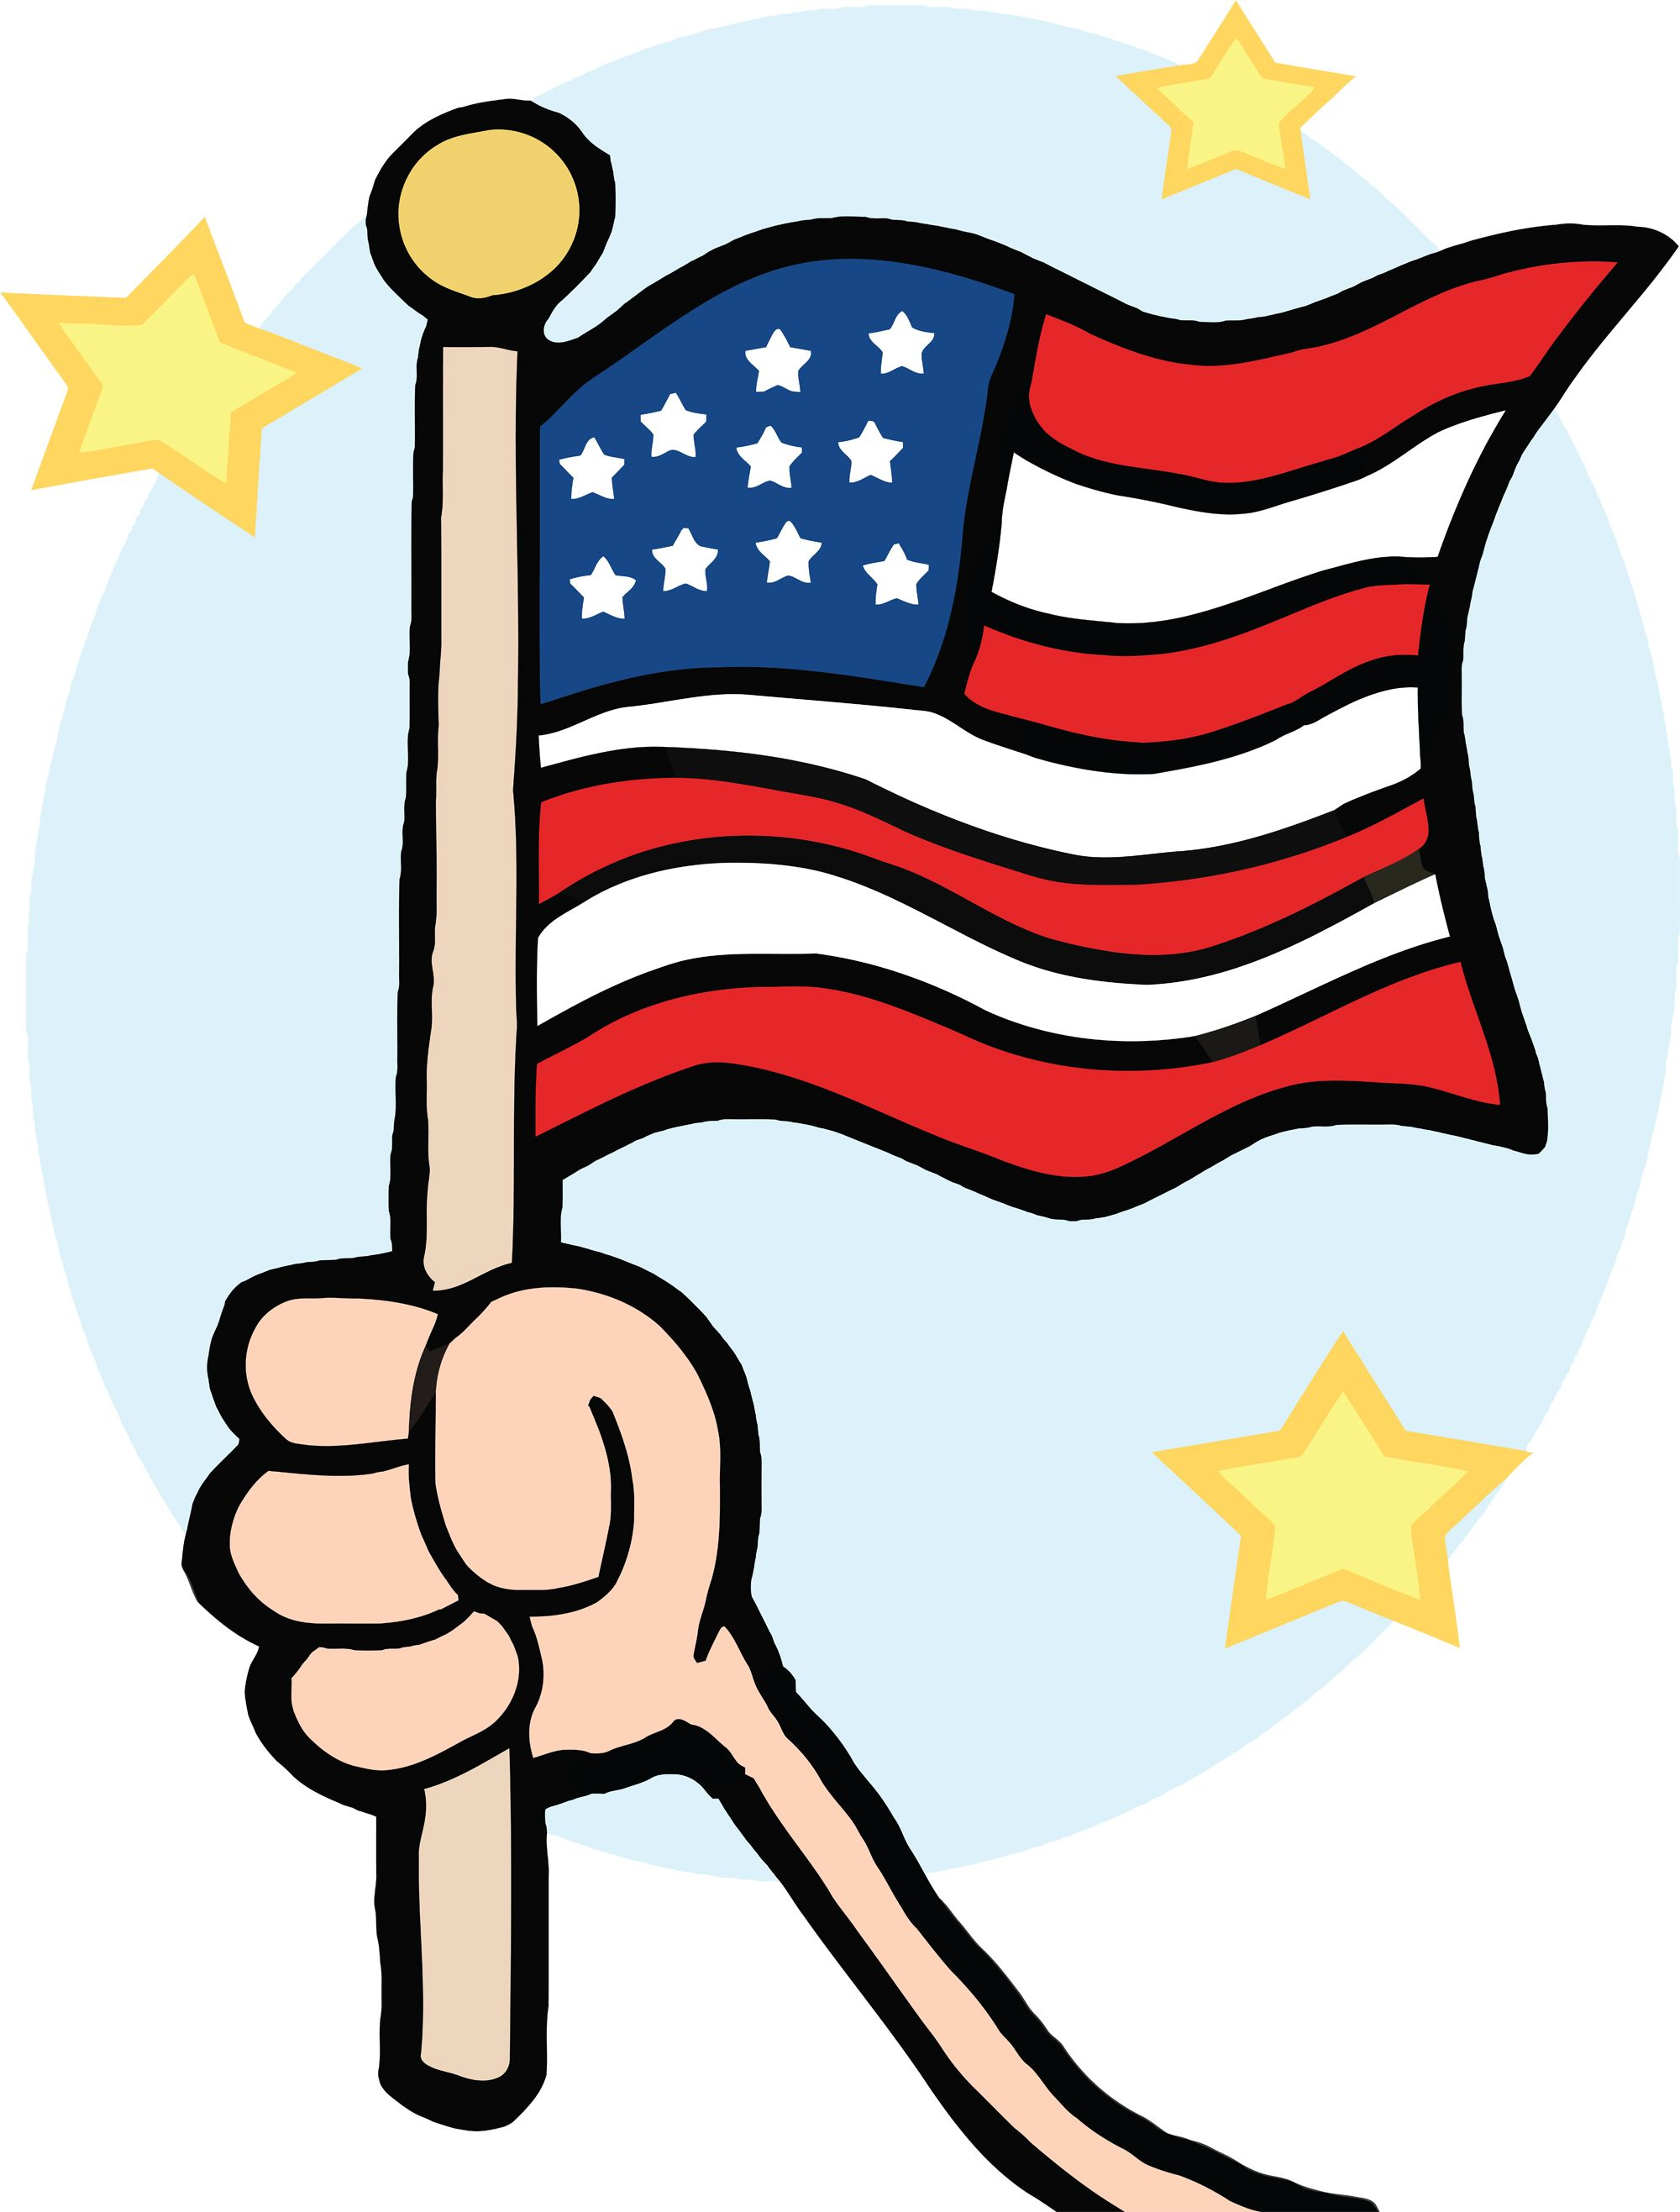 American Flag Free Clip Art Of Patriot Day Cliparts 5901 Best Cartoon Flag Patriot Day Cliparts 5901 Clipartvi Free Clip Art Speech And Language Thematic